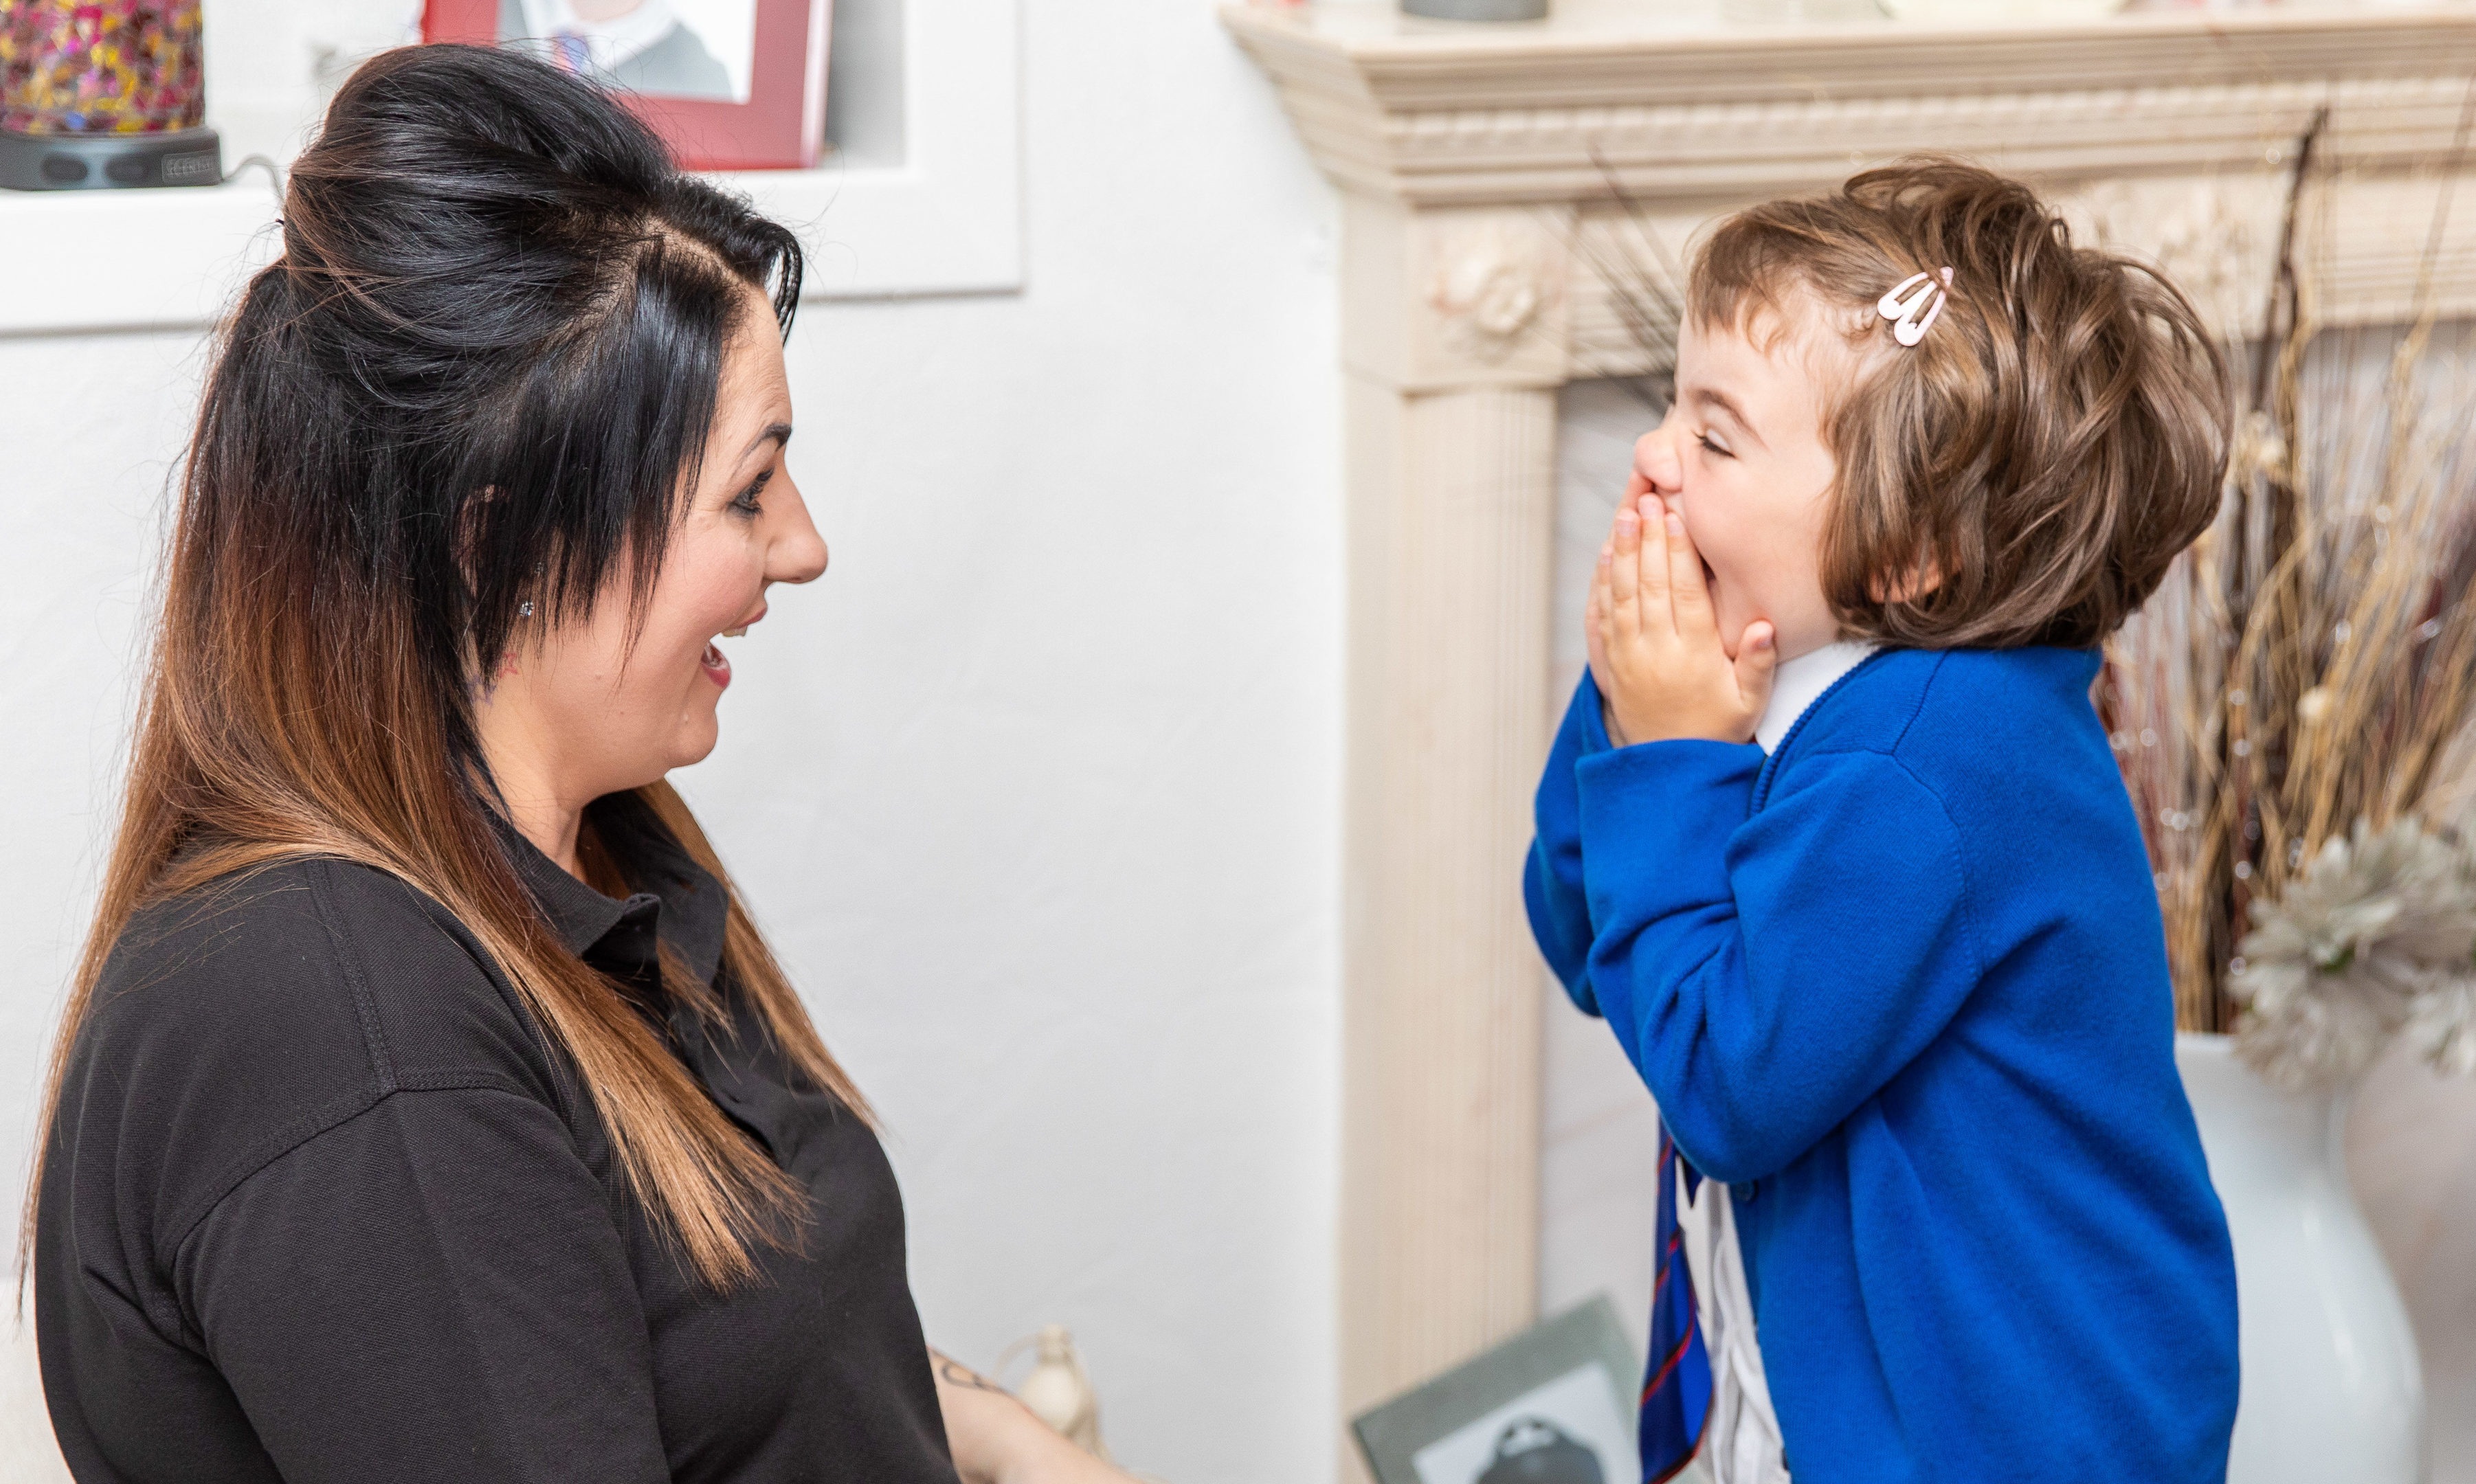 Ava getting ready for her first day at school with mum Marie.